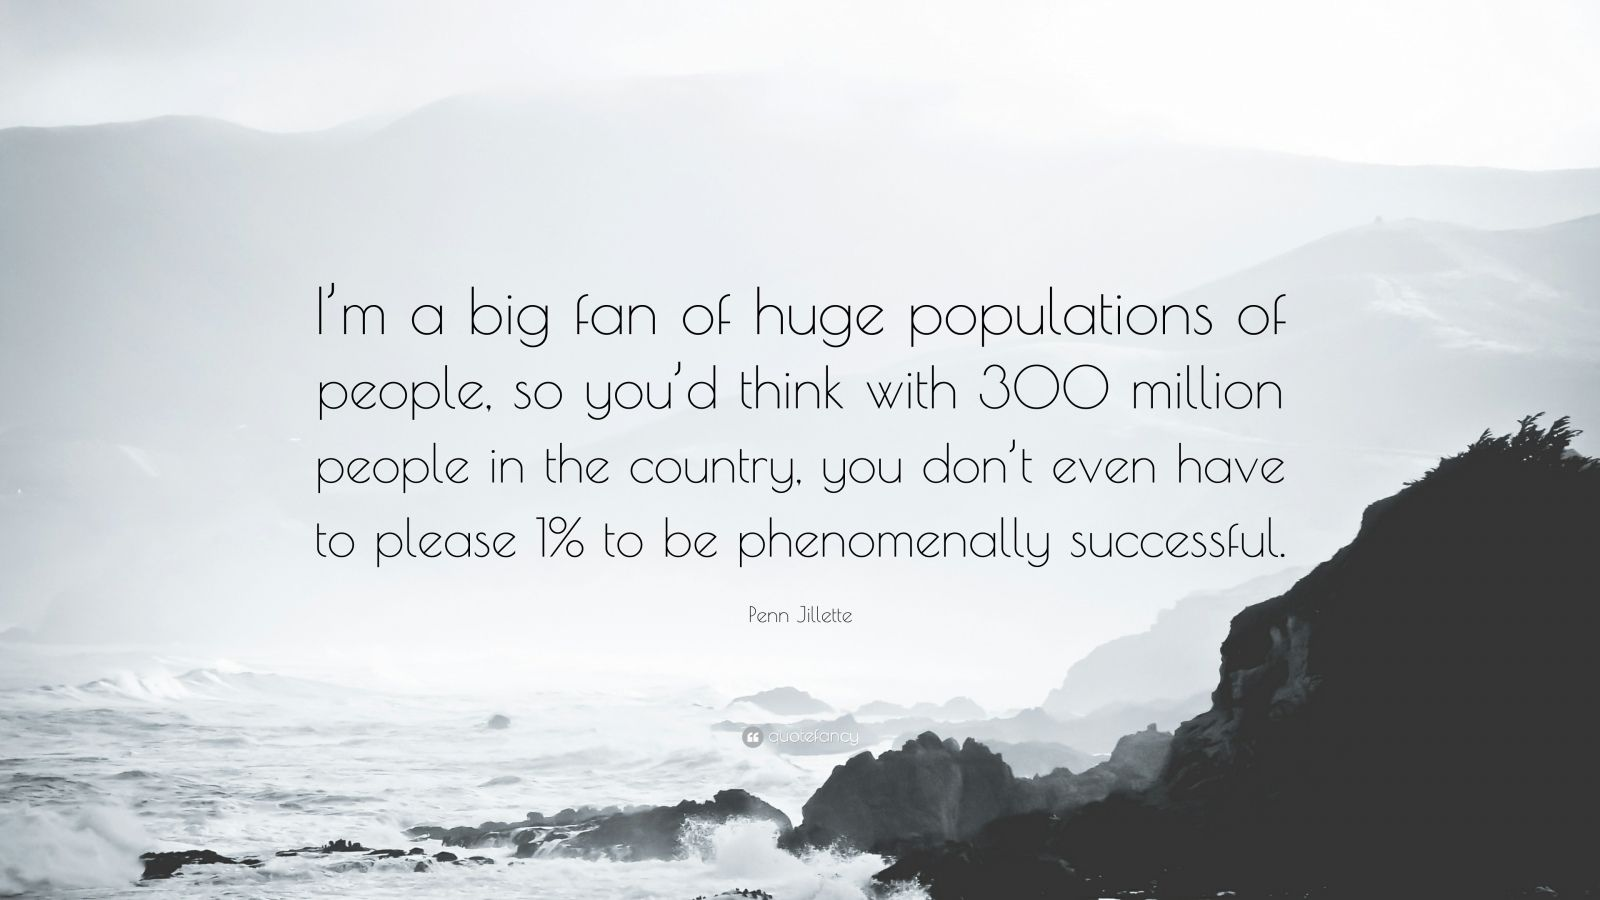 "Penn Jillette Quote: ""I'm a big fan of huge populations of people, so you'd think with 300 million people in the country, you don't even have to please 1% to be phenomenally successful."""